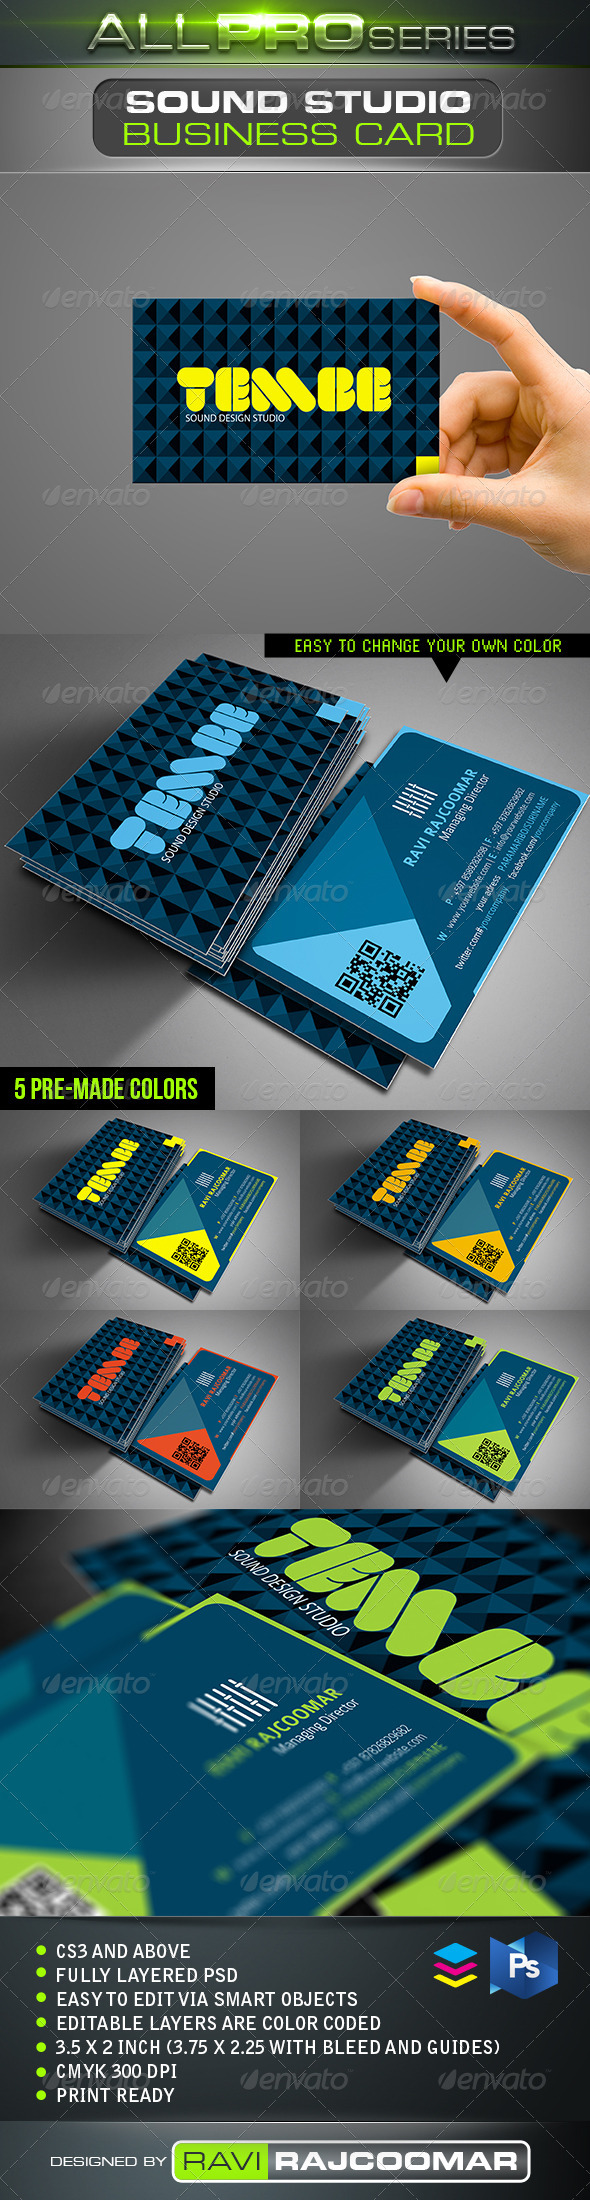 Sound Studio Business Card - Business Cards Print Templates